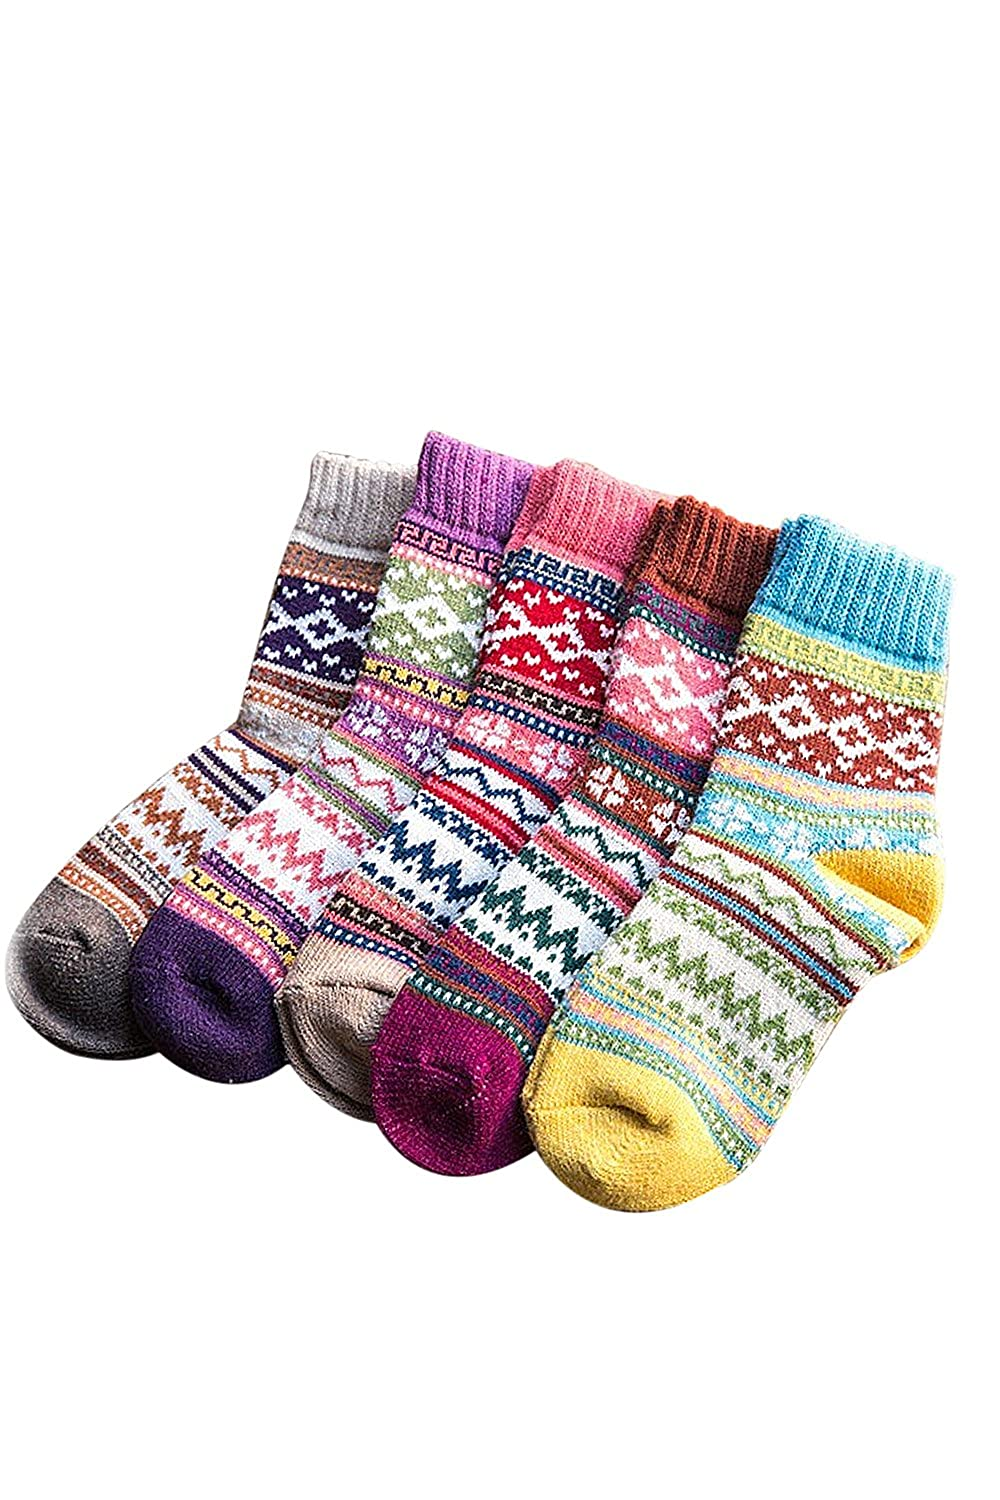 Elisona 5 Pairs of Women Ladies Girls Mixed Colors Winter Warm Thickness Bohemia Style Tube Socks Random Color